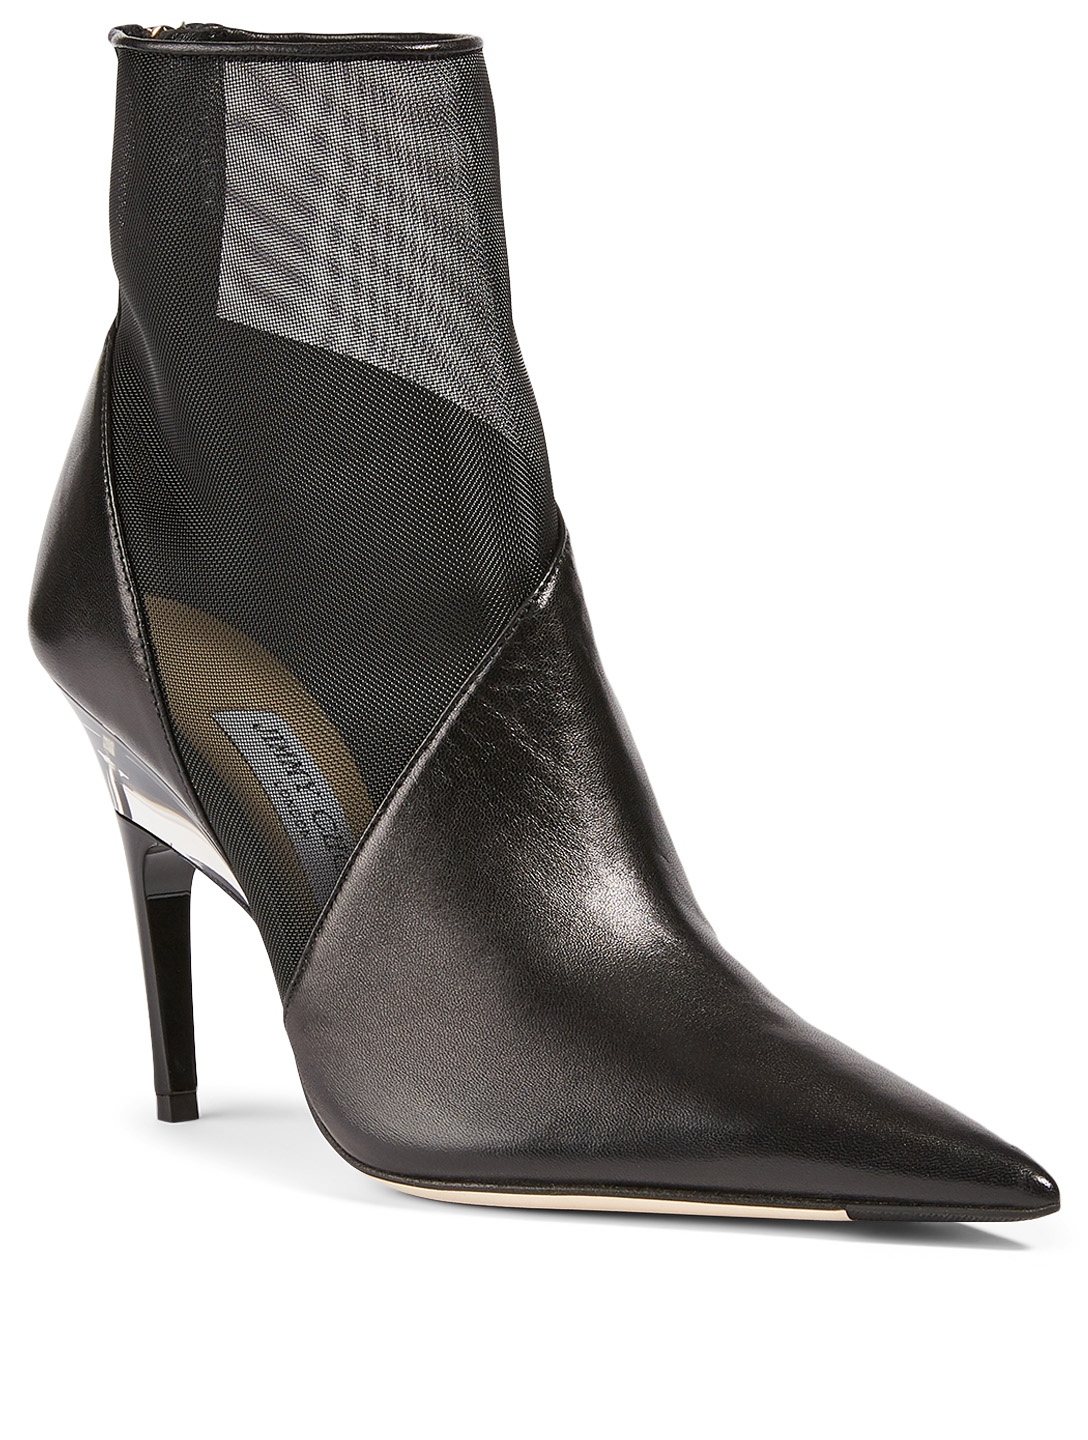 JIMMY CHOO Sioux 100 Leather And Mesh Plexi Heeled Ankle Boots Women's Black